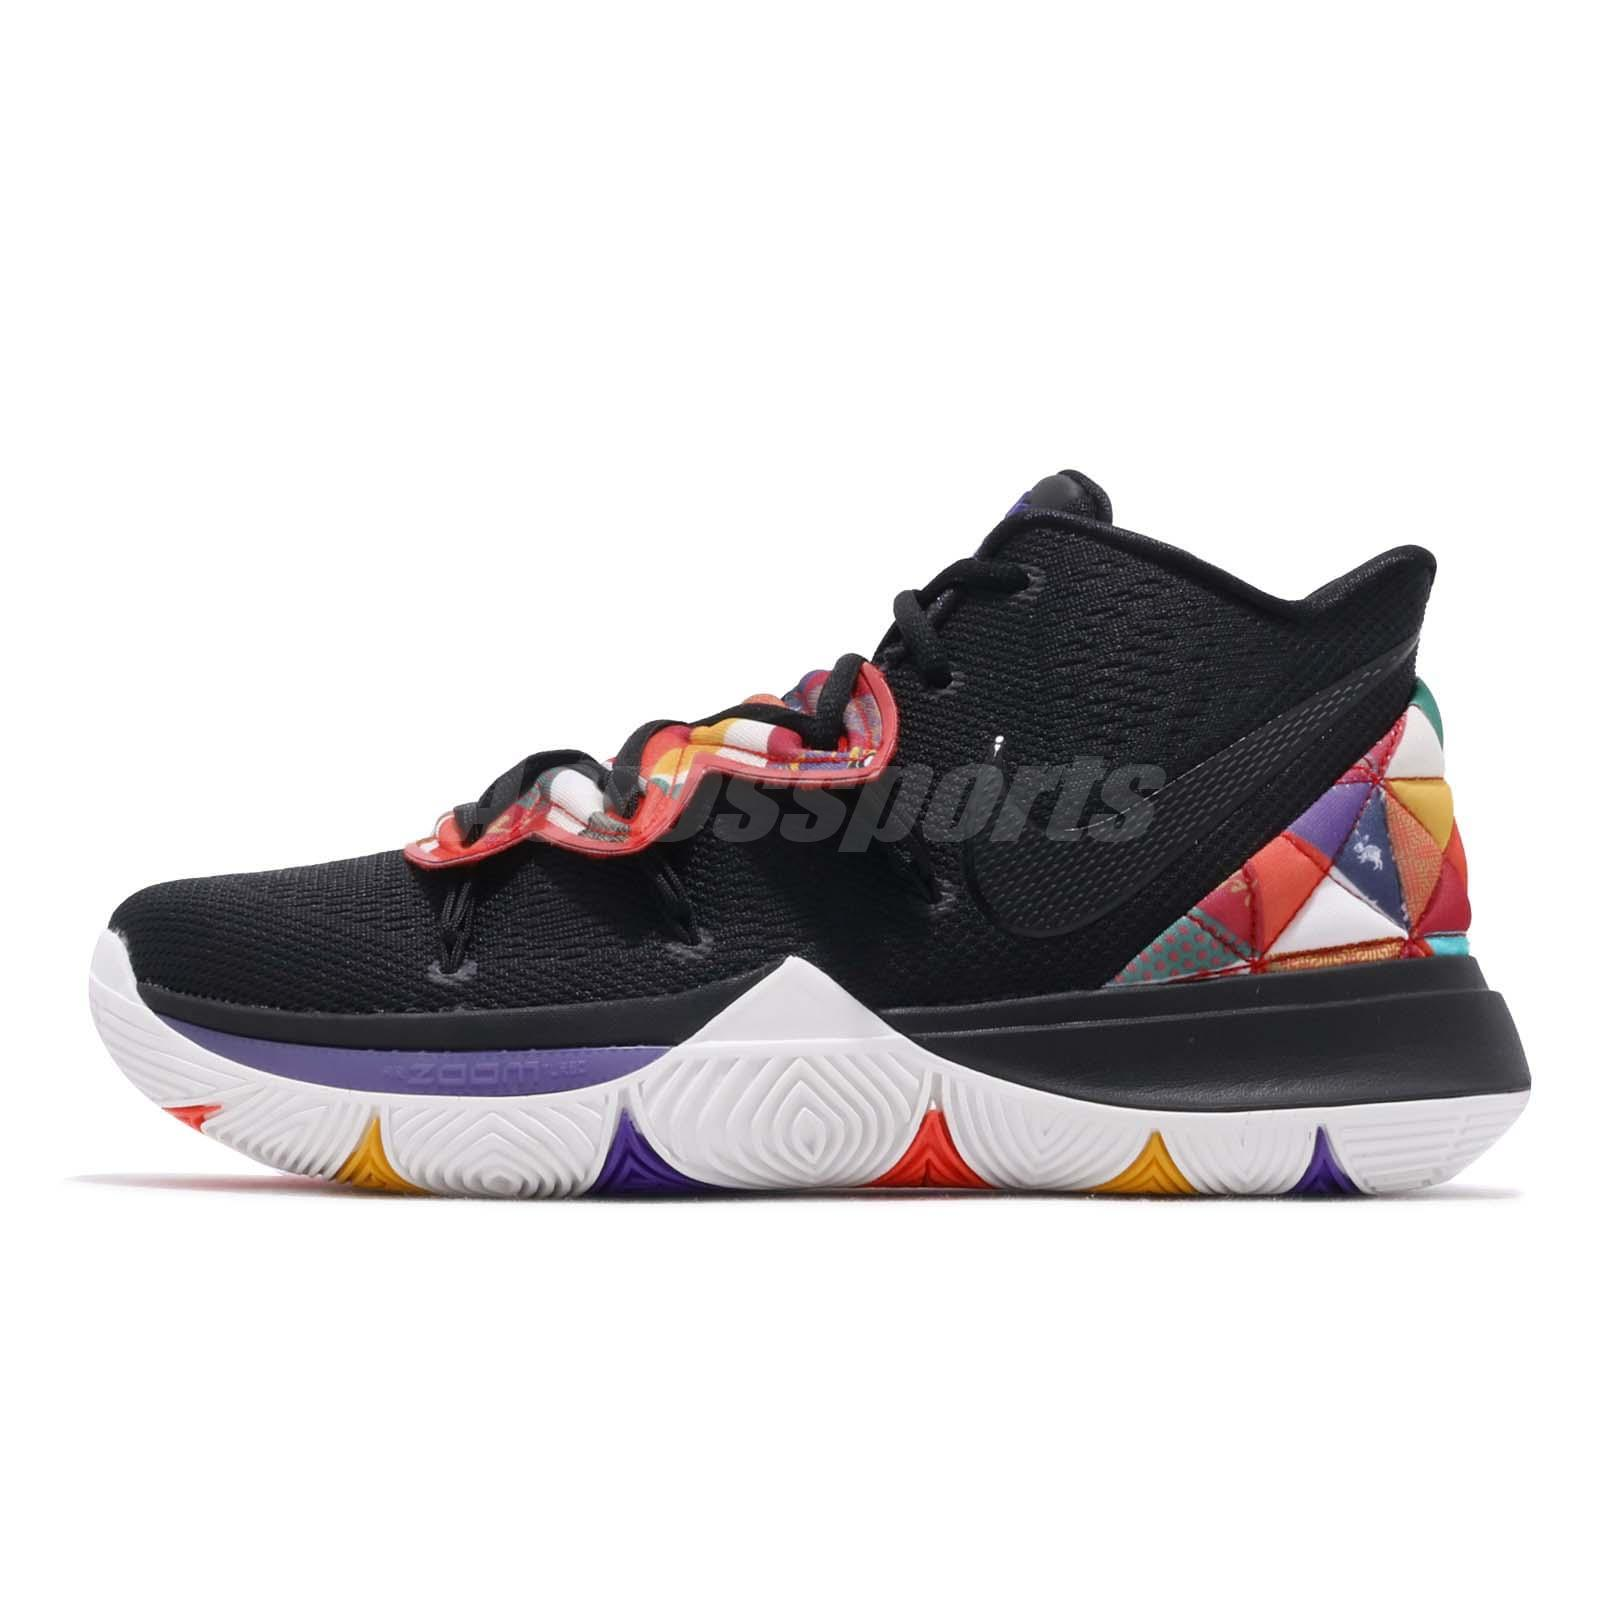 2d24fdf36a4f Nike Kyrie 5 EP V Irving CNY Chinese New Year Men Shoes Sneakers AO2919-010